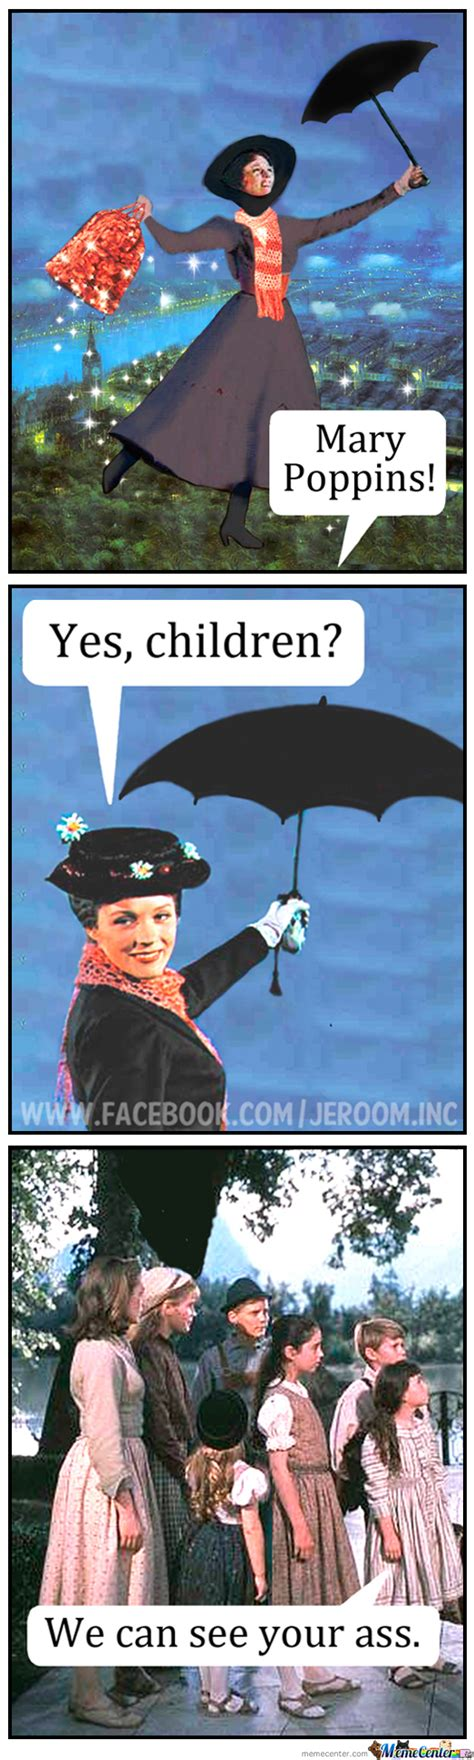 Mary Poppins Meme - mary poppins by jeroom meme center